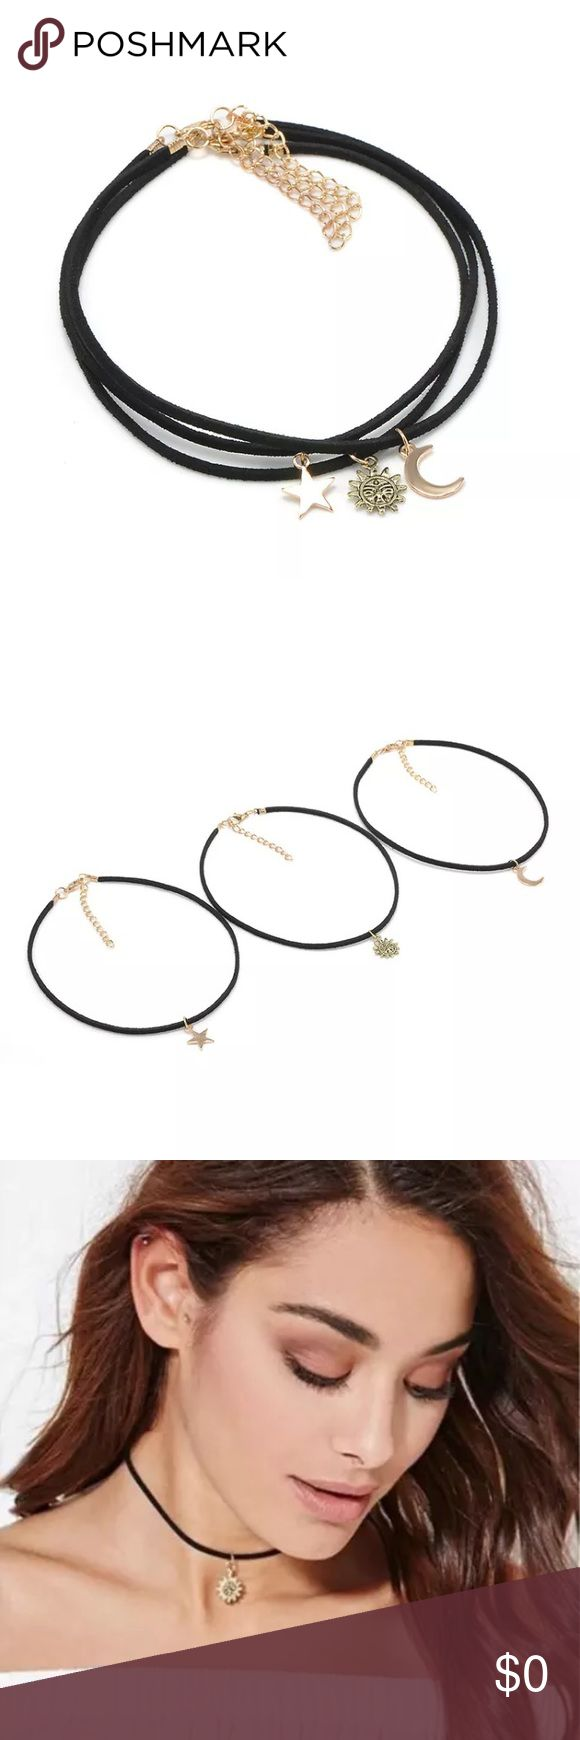 3 Multilayered Chocker Necklaces Item Specifics BrandUnbranded ColorBlack Country/Region of ManufactureChina Length (inches)35.5cm Main ColorBlack MaterialVelvet StyleChoker 3 pieces  E2 Jewelry Necklaces